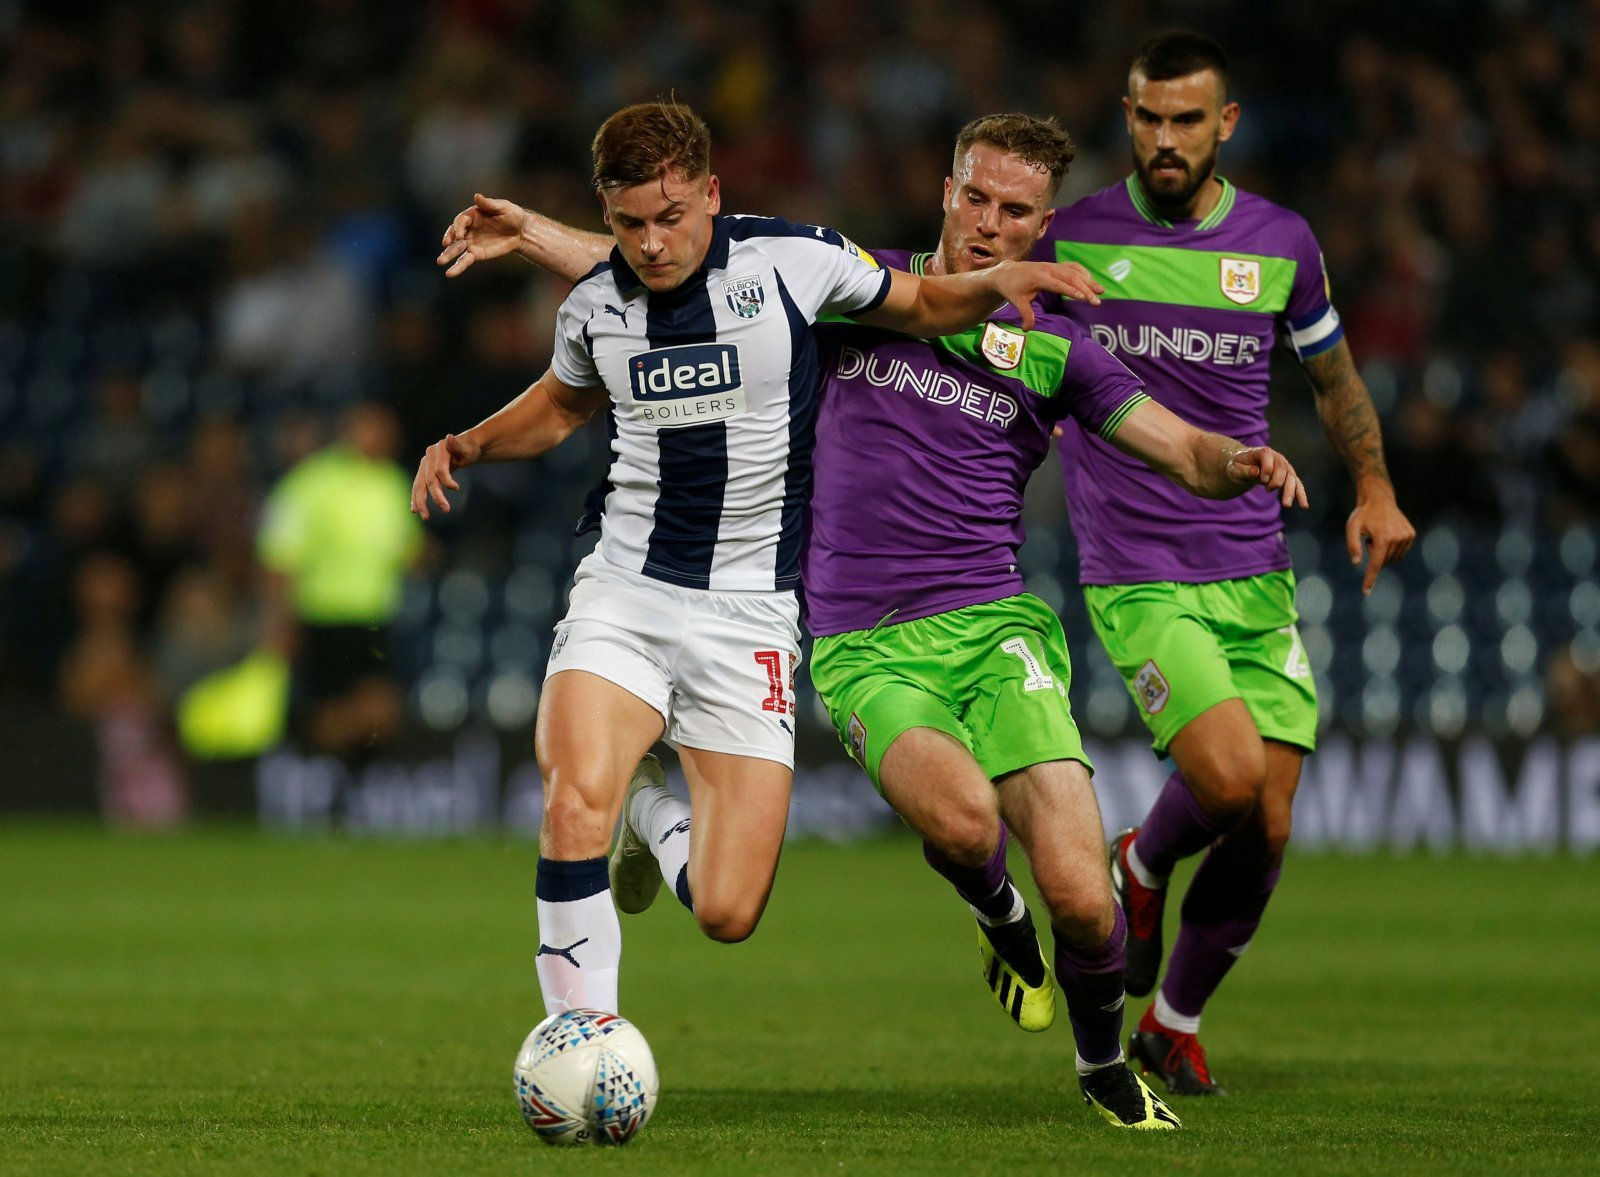 Harvey Barnes and Phil Foden could be a future midfield pairing at international level